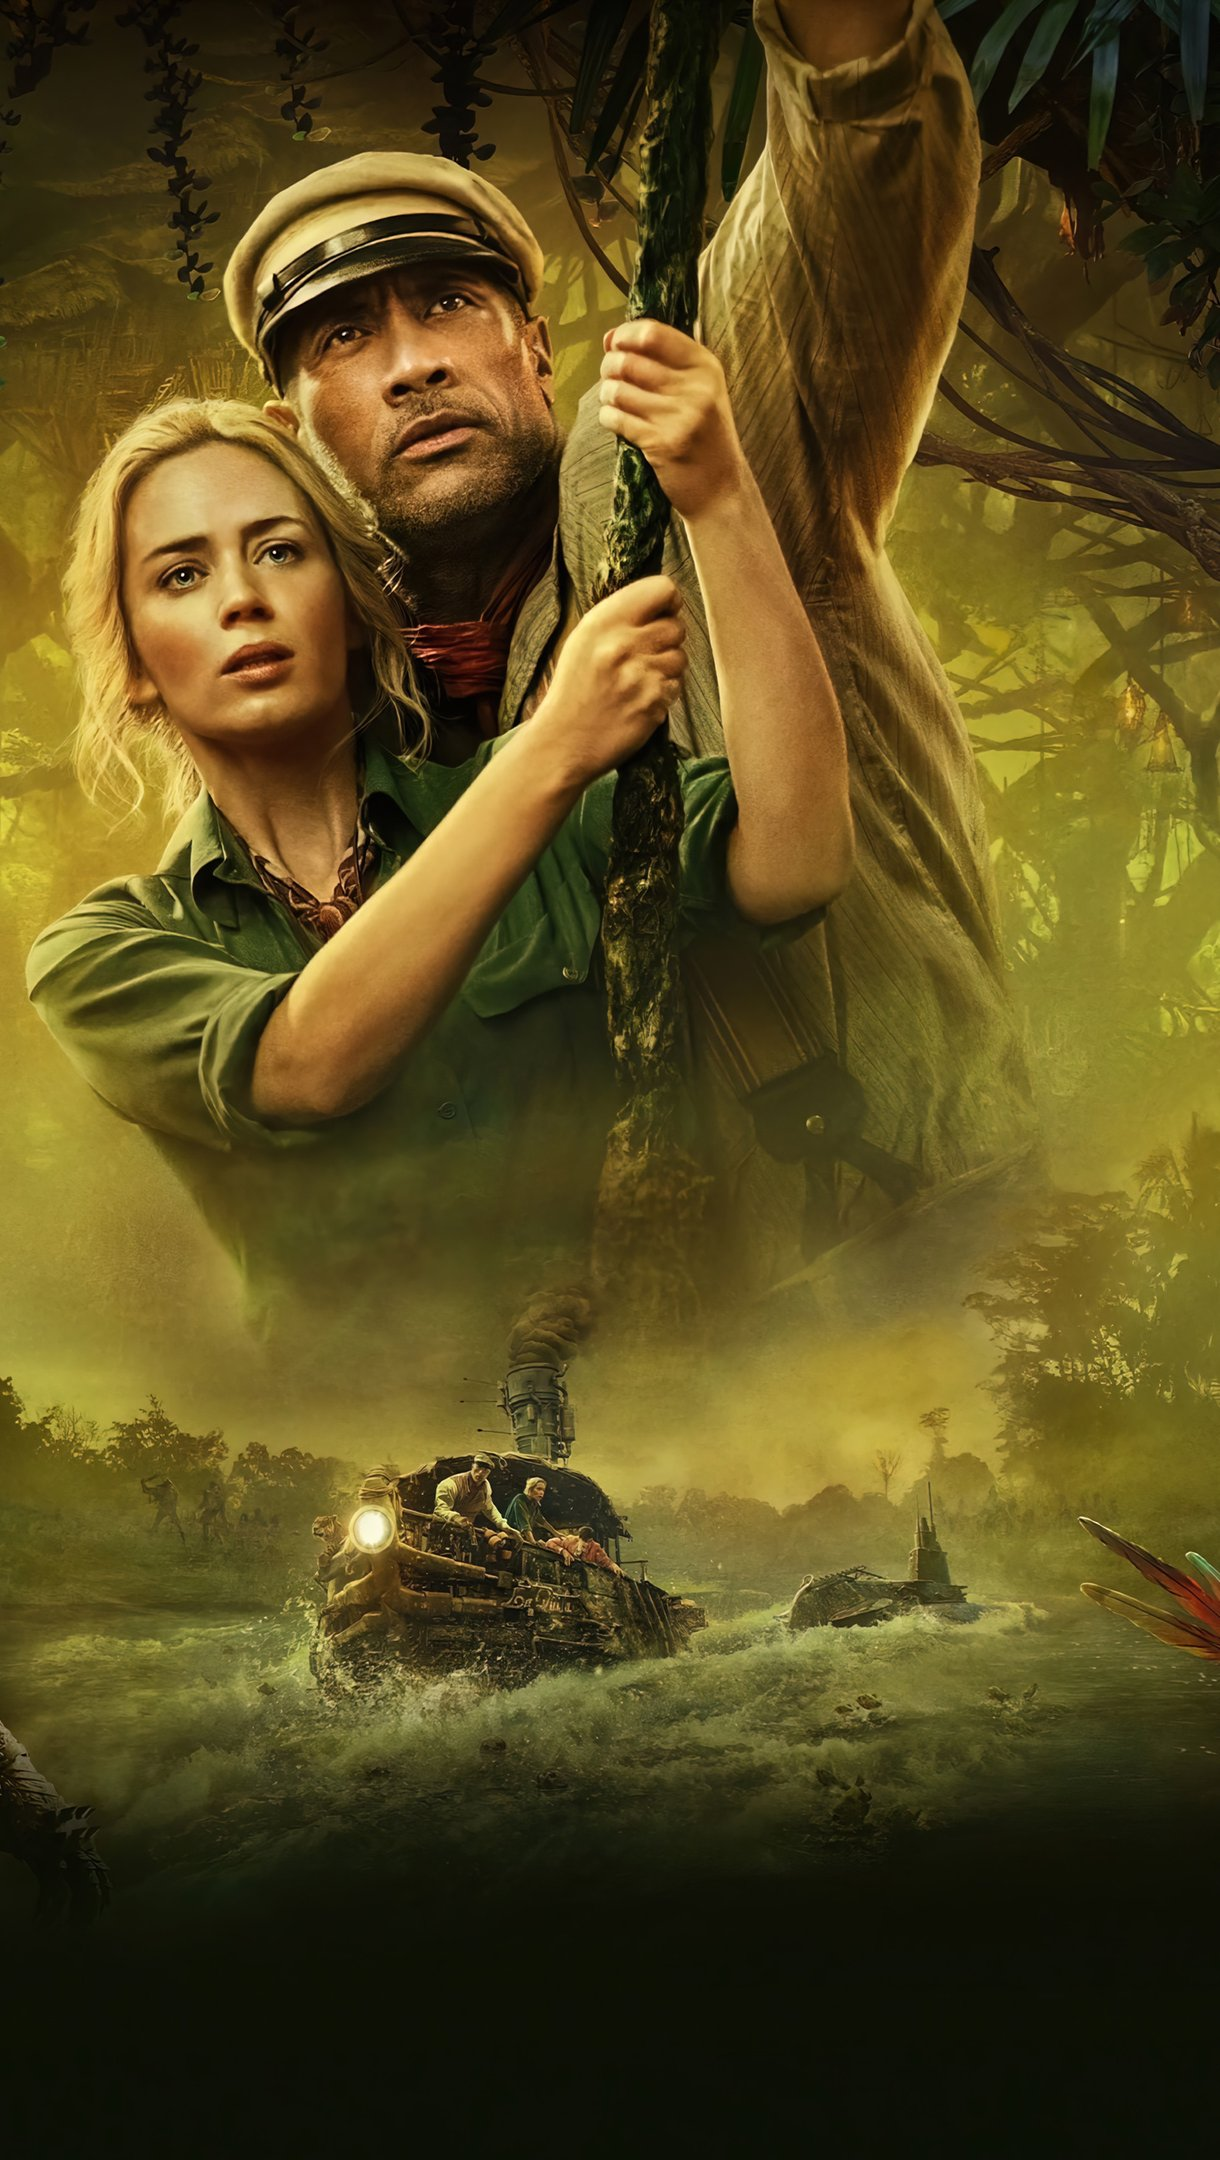 Wallpaper Emily Blunt and Dwayne Johnson in Jungle Cruise Vertical